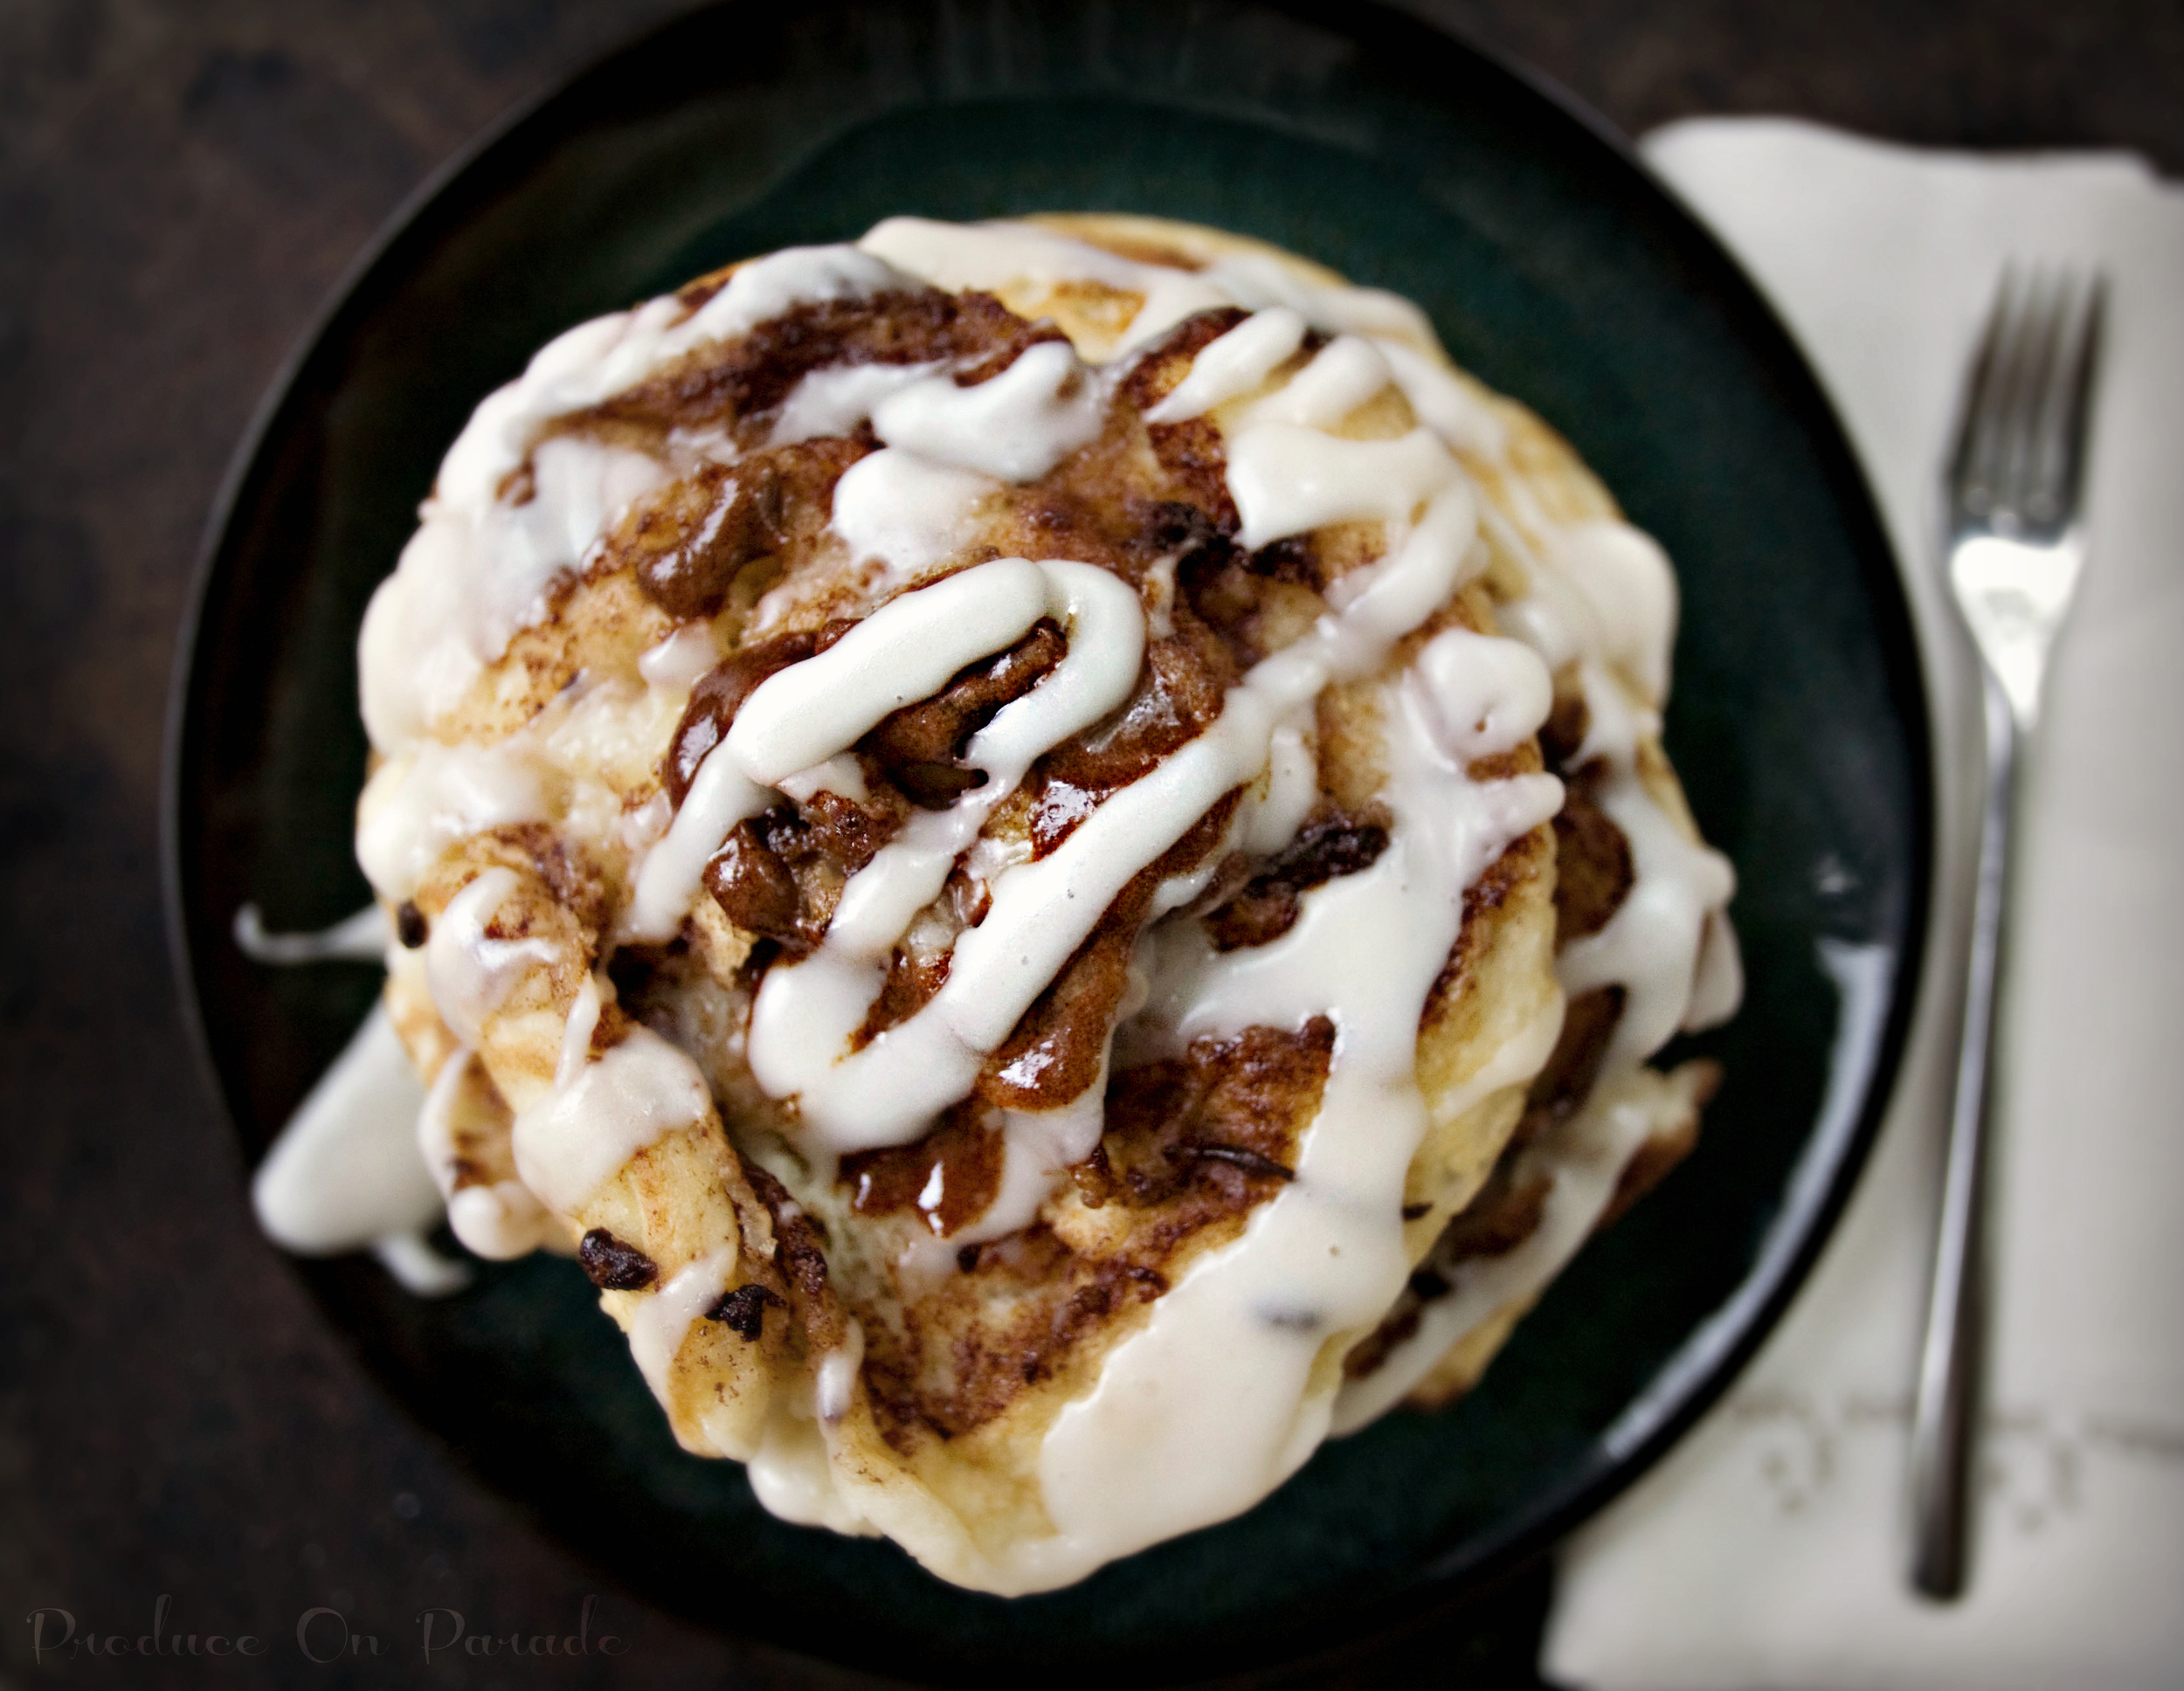 Produce On Parade - Coconutty Cinnamon Roll Pancakes